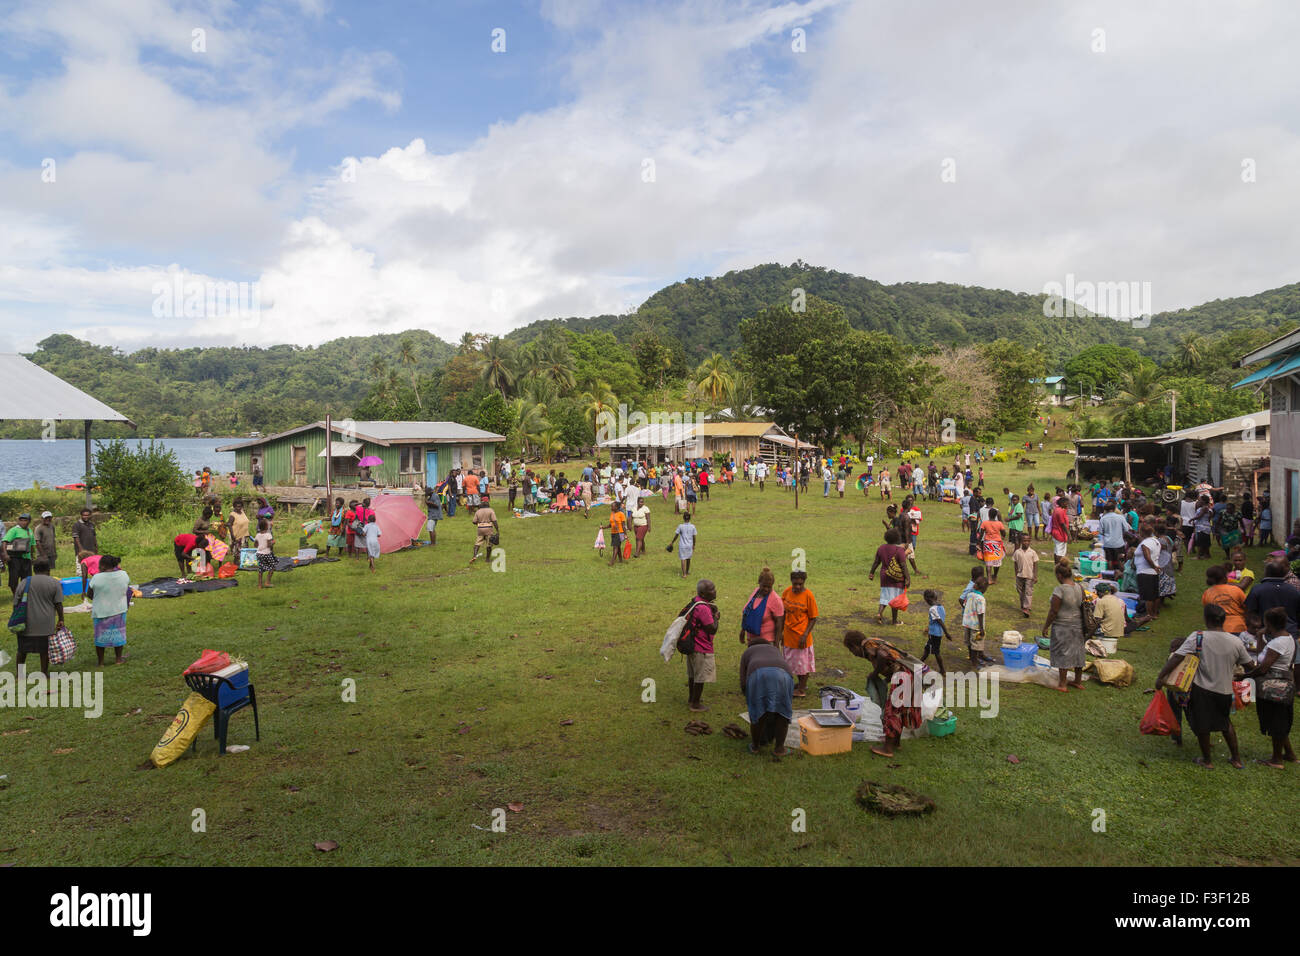 Batuna, Solomon Islands - May 28, 2015: People buying and selling food at the local market in the village of Batuna. - Stock Image